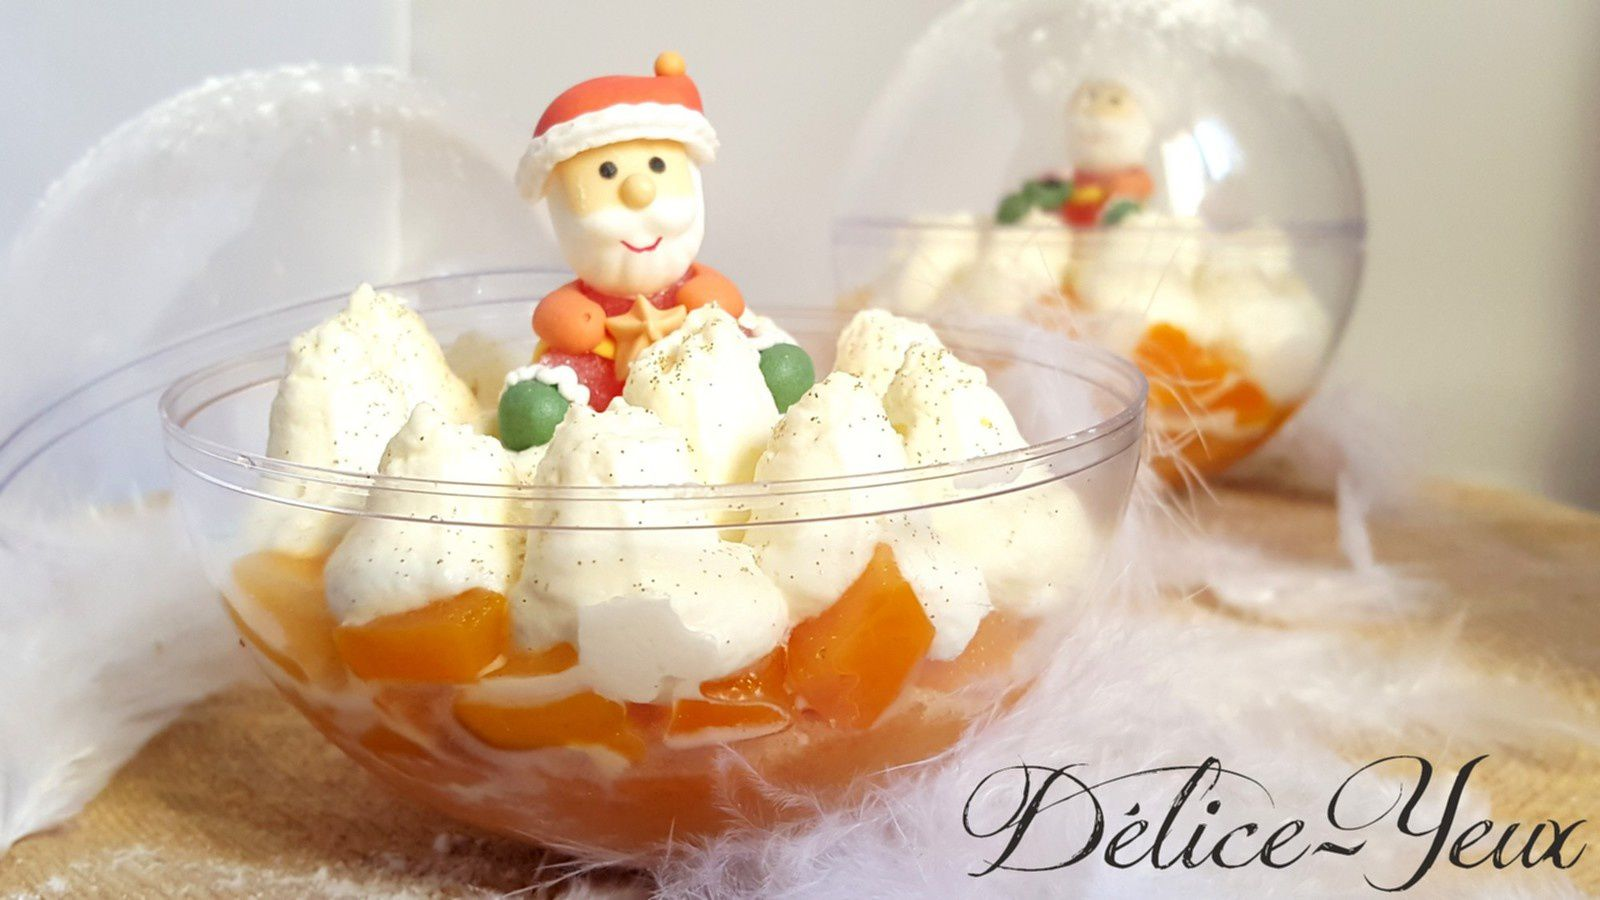 Boules de Noël {Mangue &amp&#x3B; Chantilly mascarpone vanille}